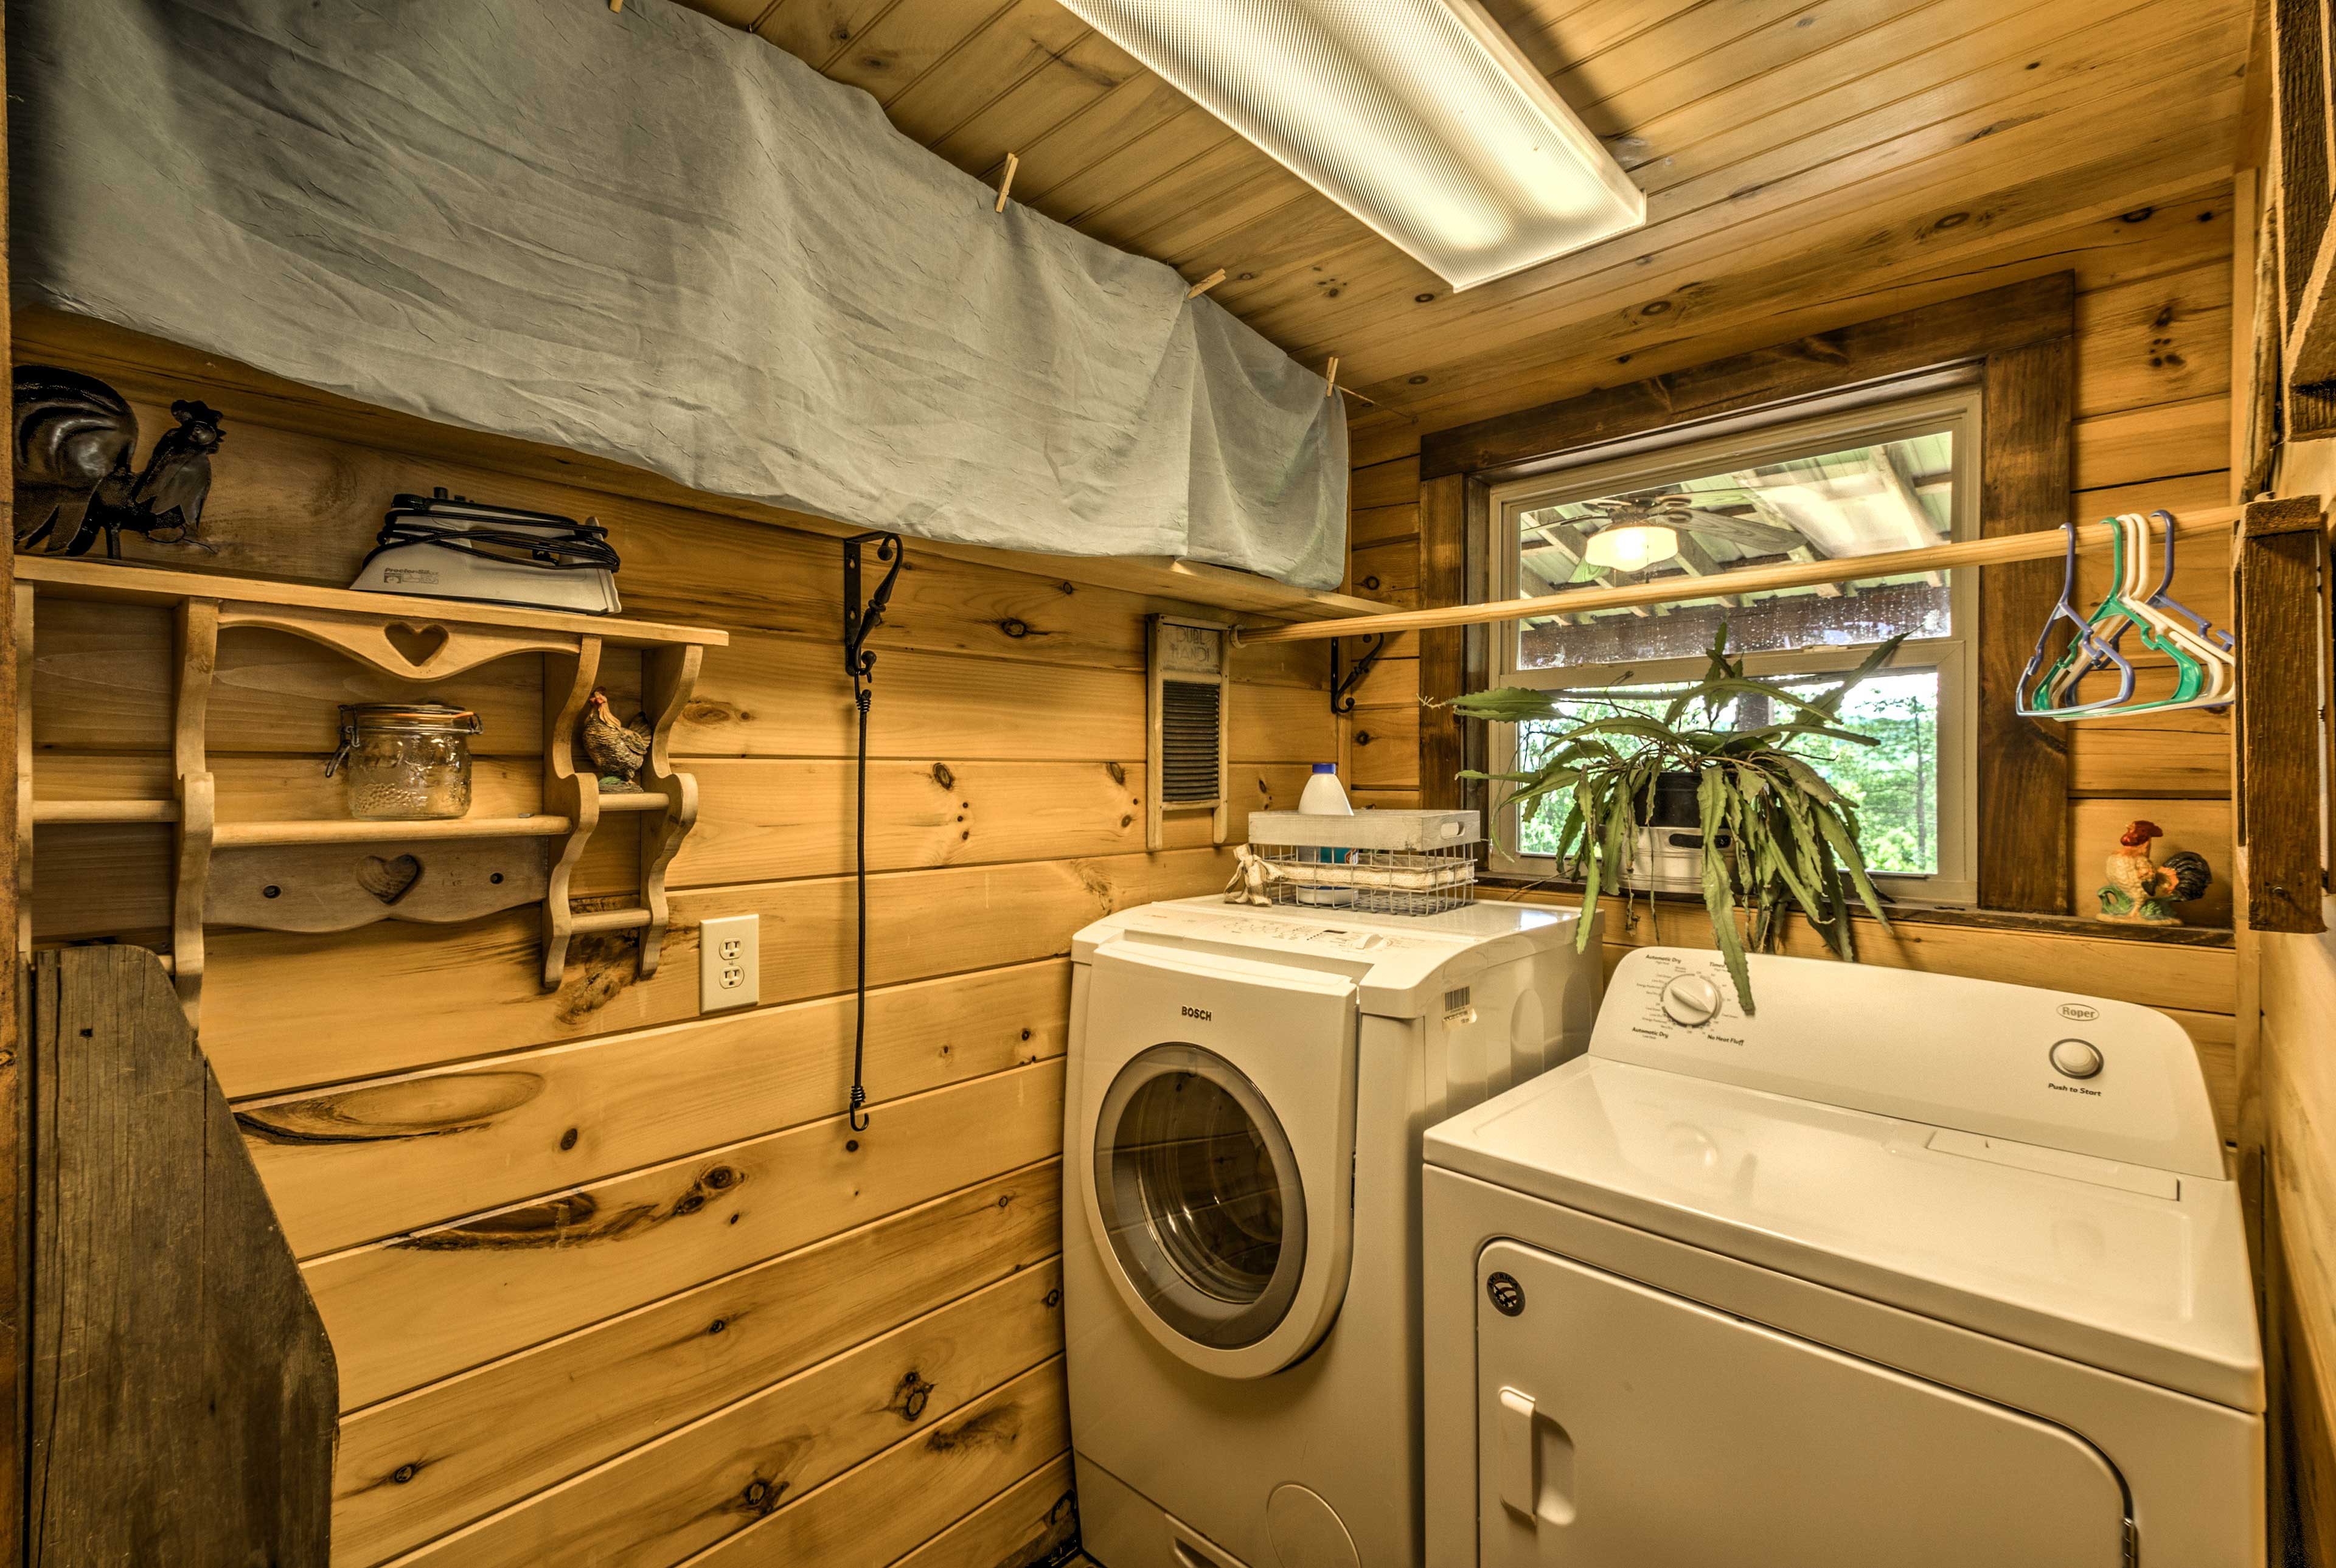 A washer and dryer are conveniently located right in the cabin.